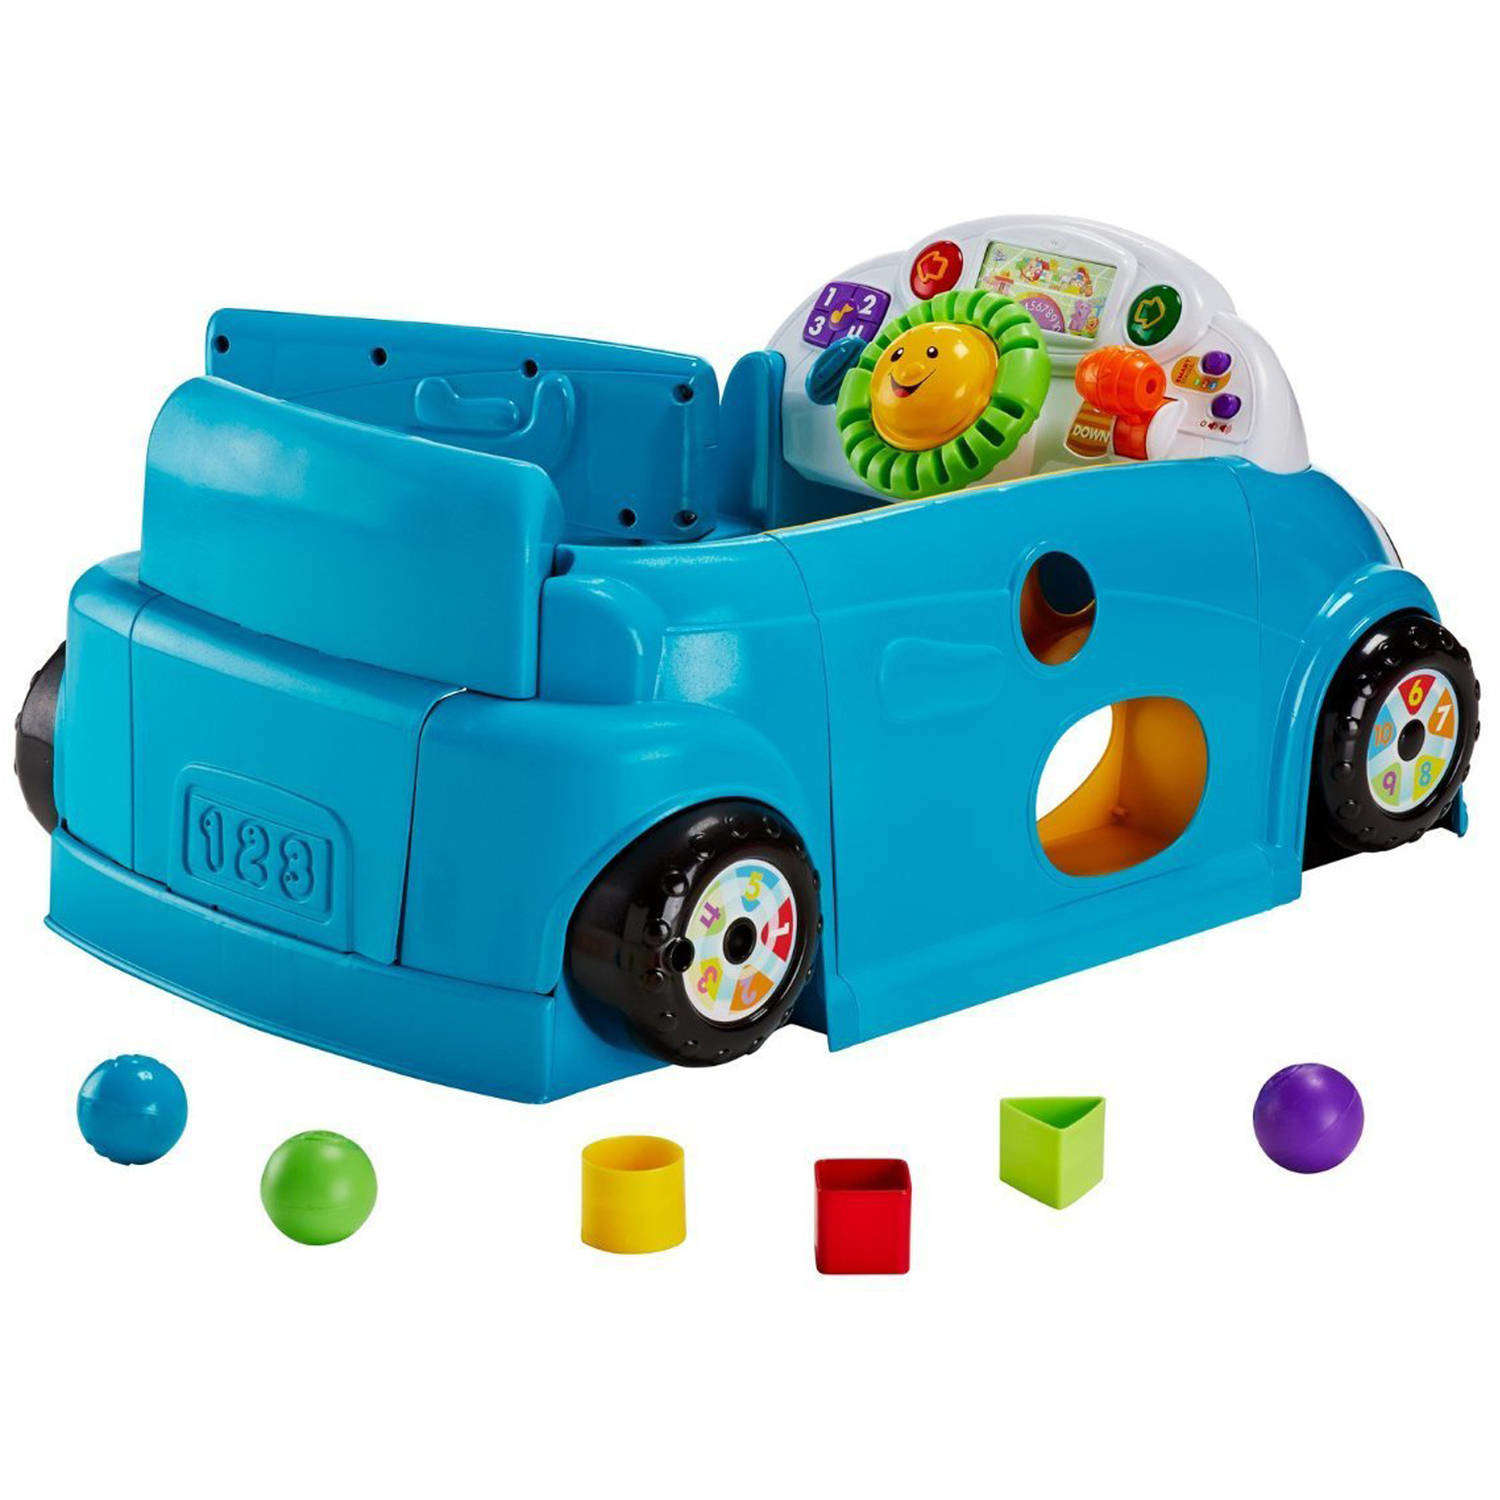 EDUCATIONAL TOYS 2 Year Old Toddlers Age 1 3 Learning 6 ...